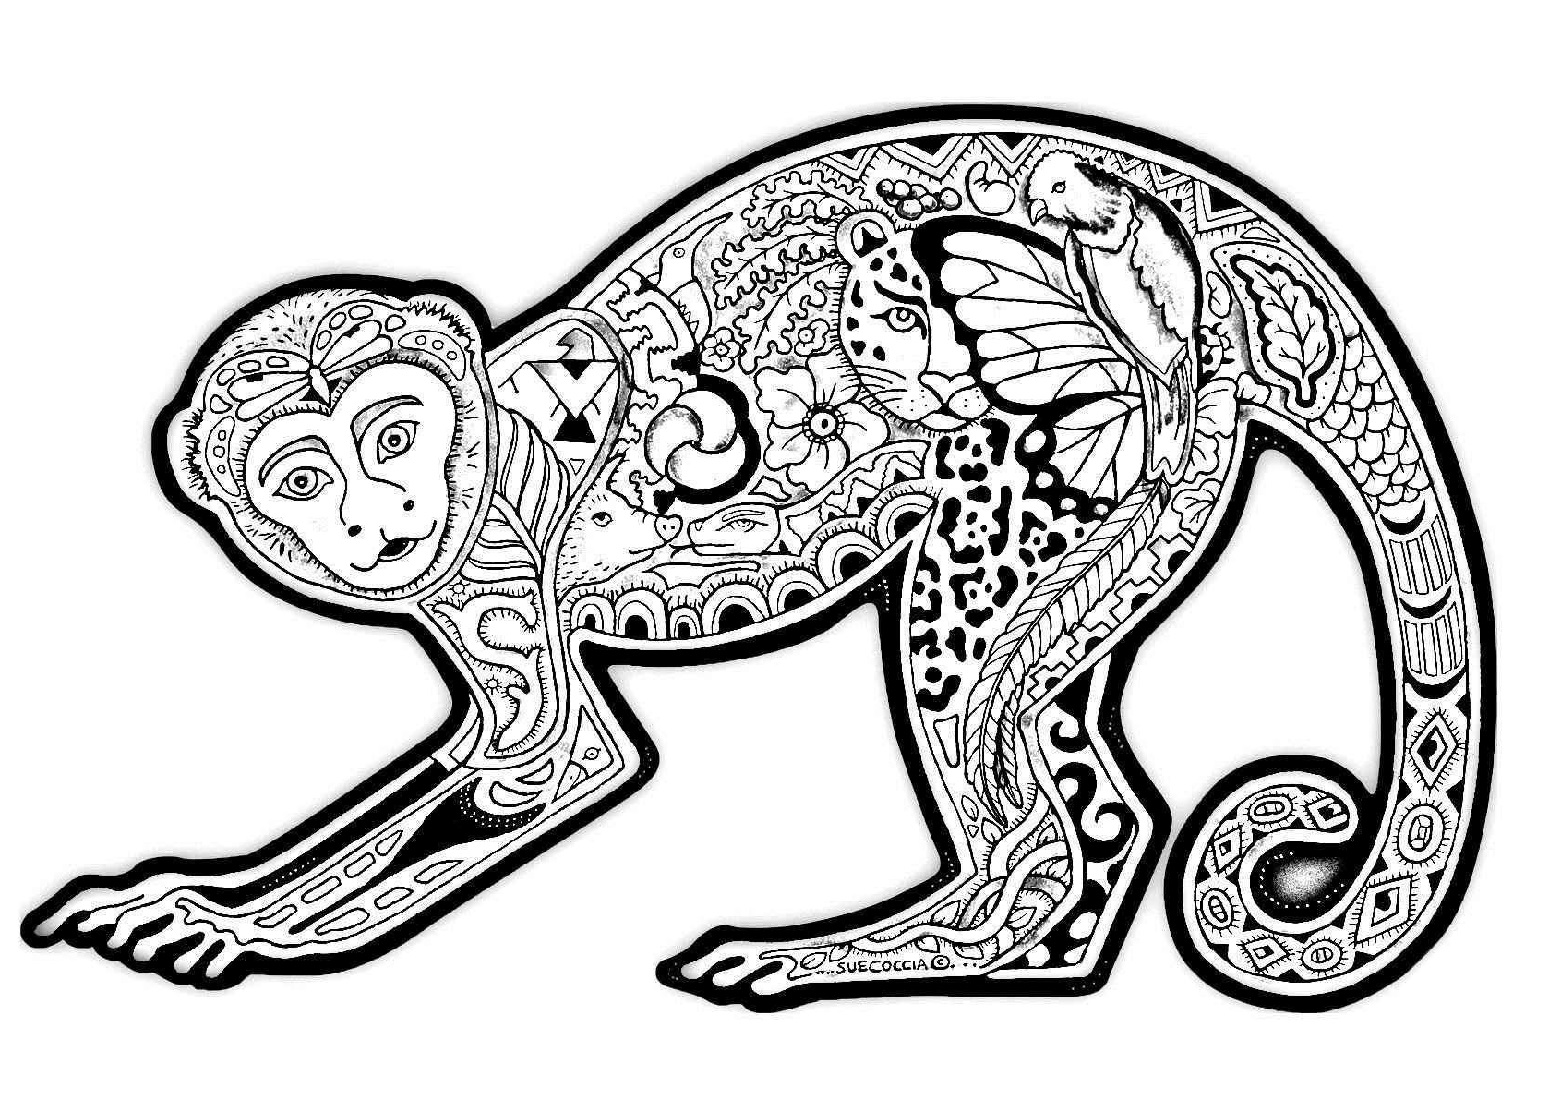 Coloring Pages of Monkeys for Adult